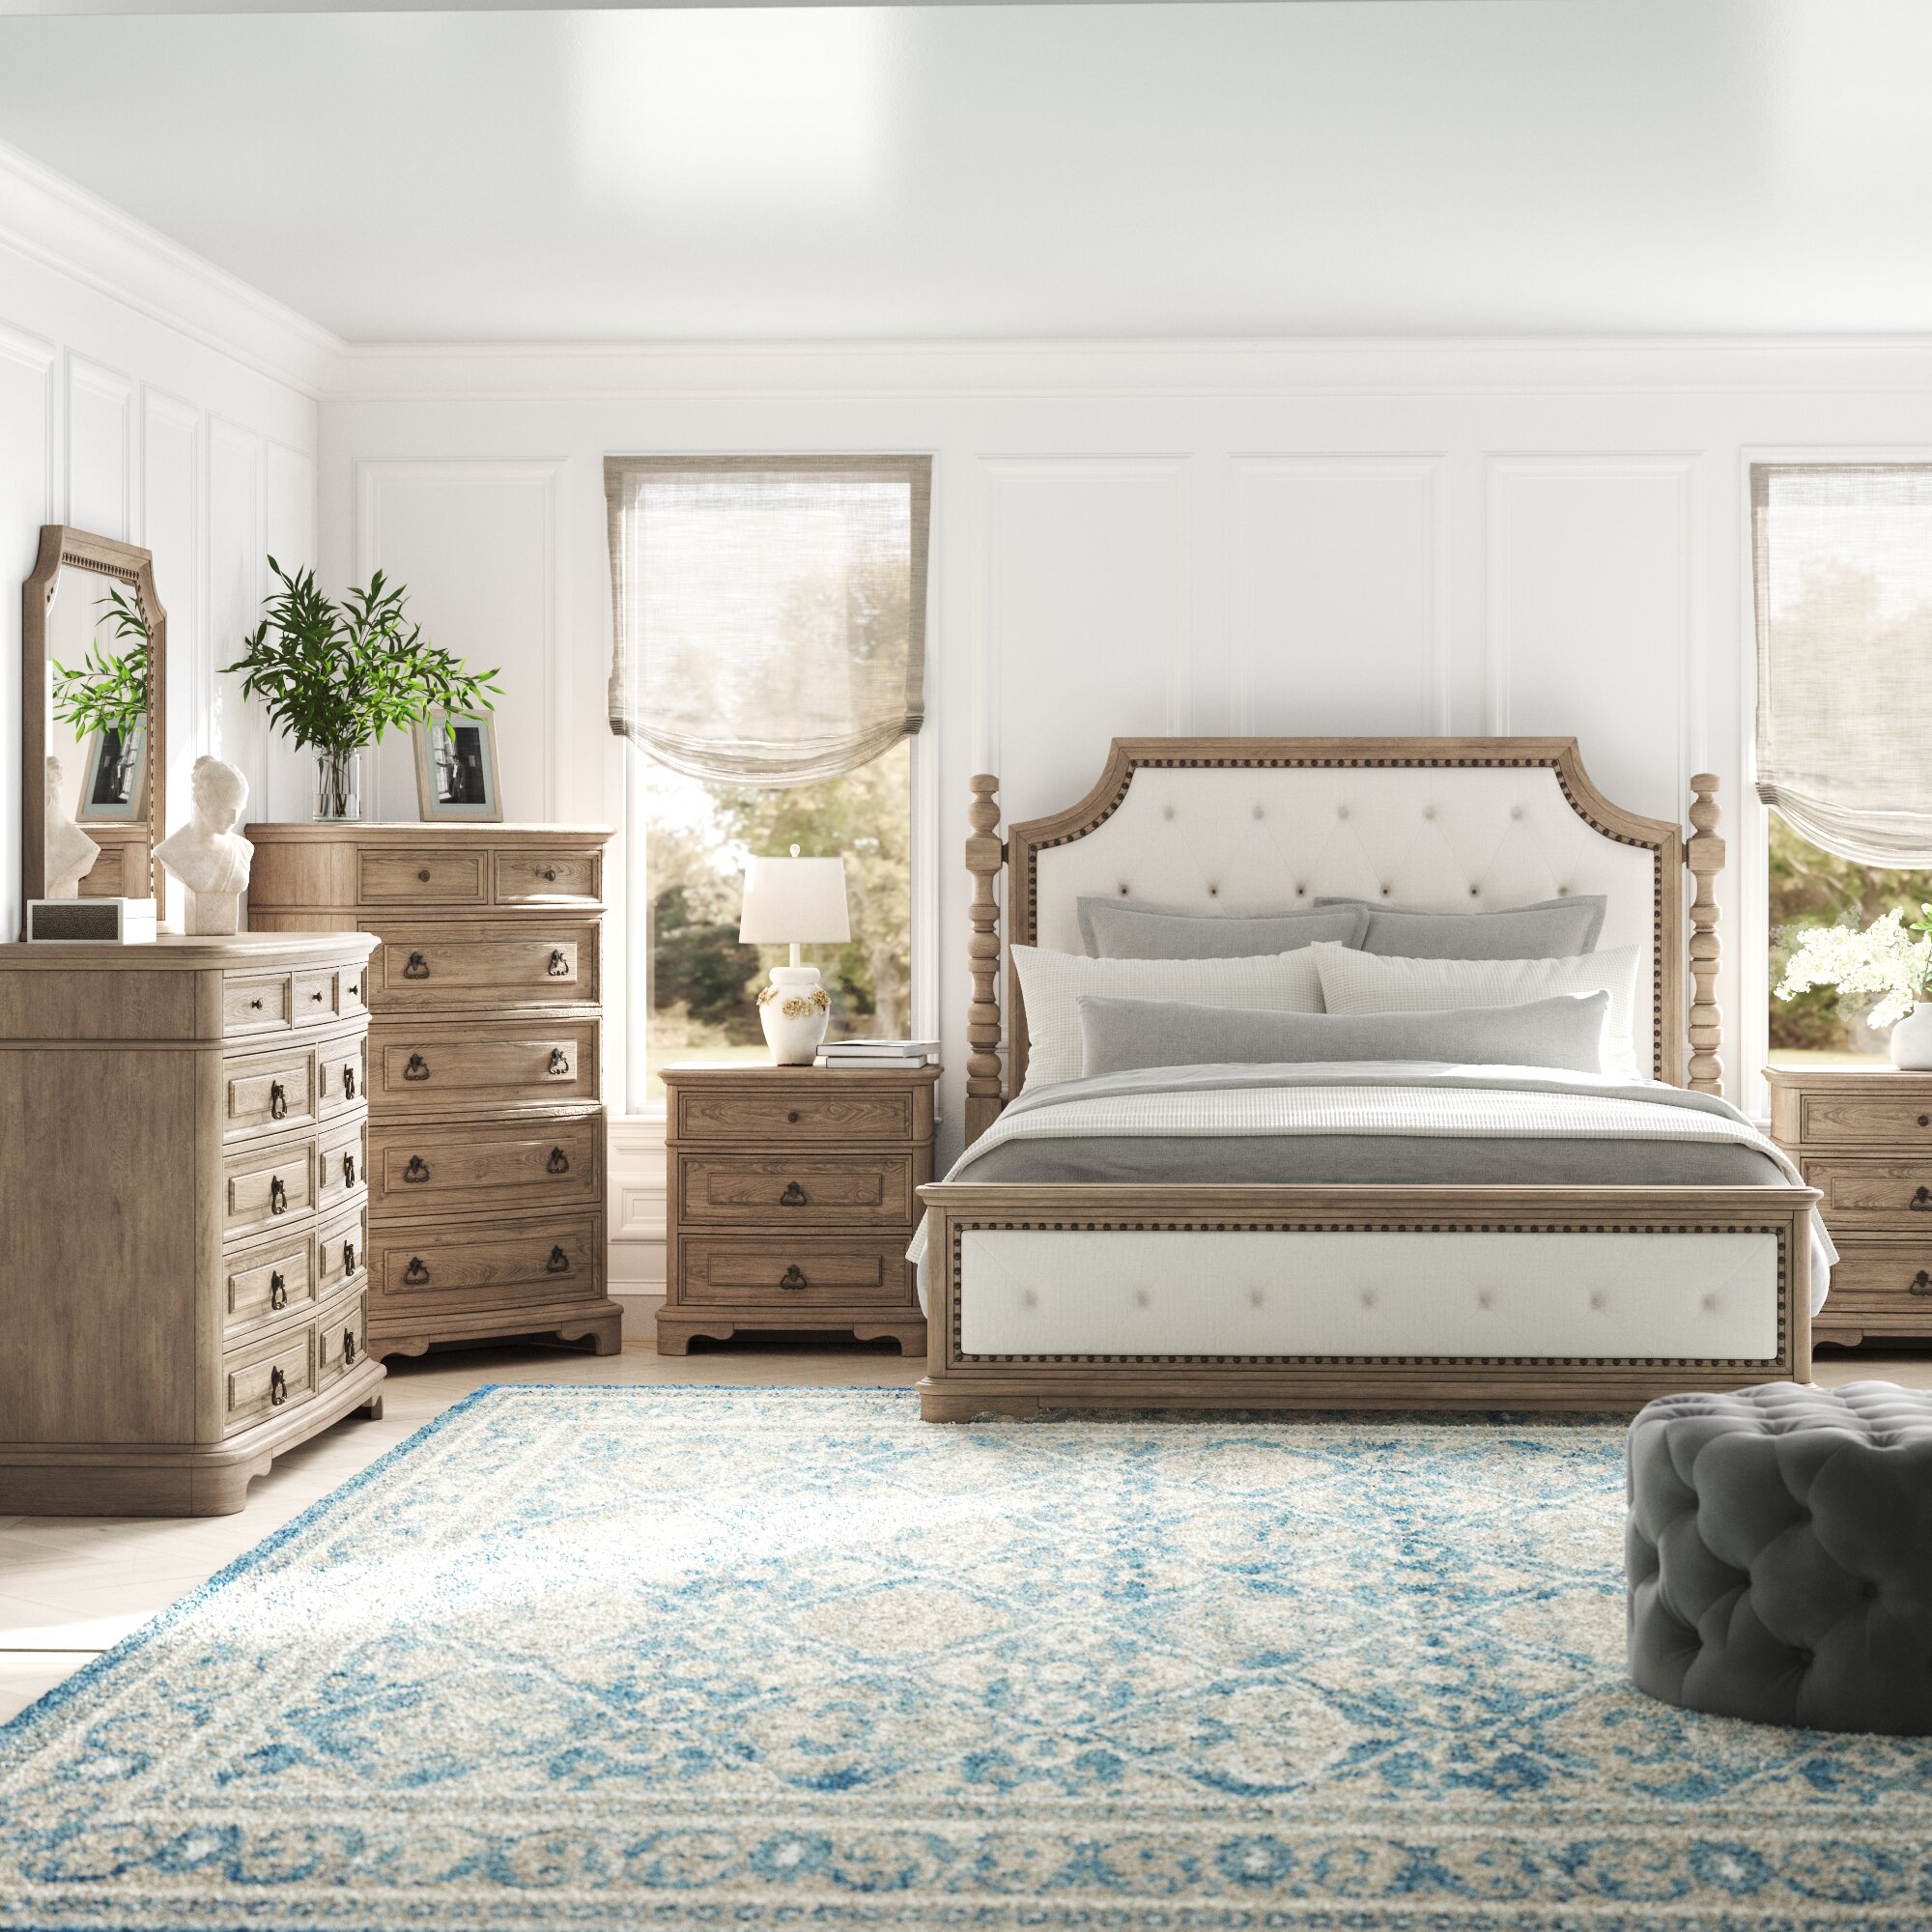 French Country Bedroom Sets Furniture Free Shipping Over 35 Wayfair